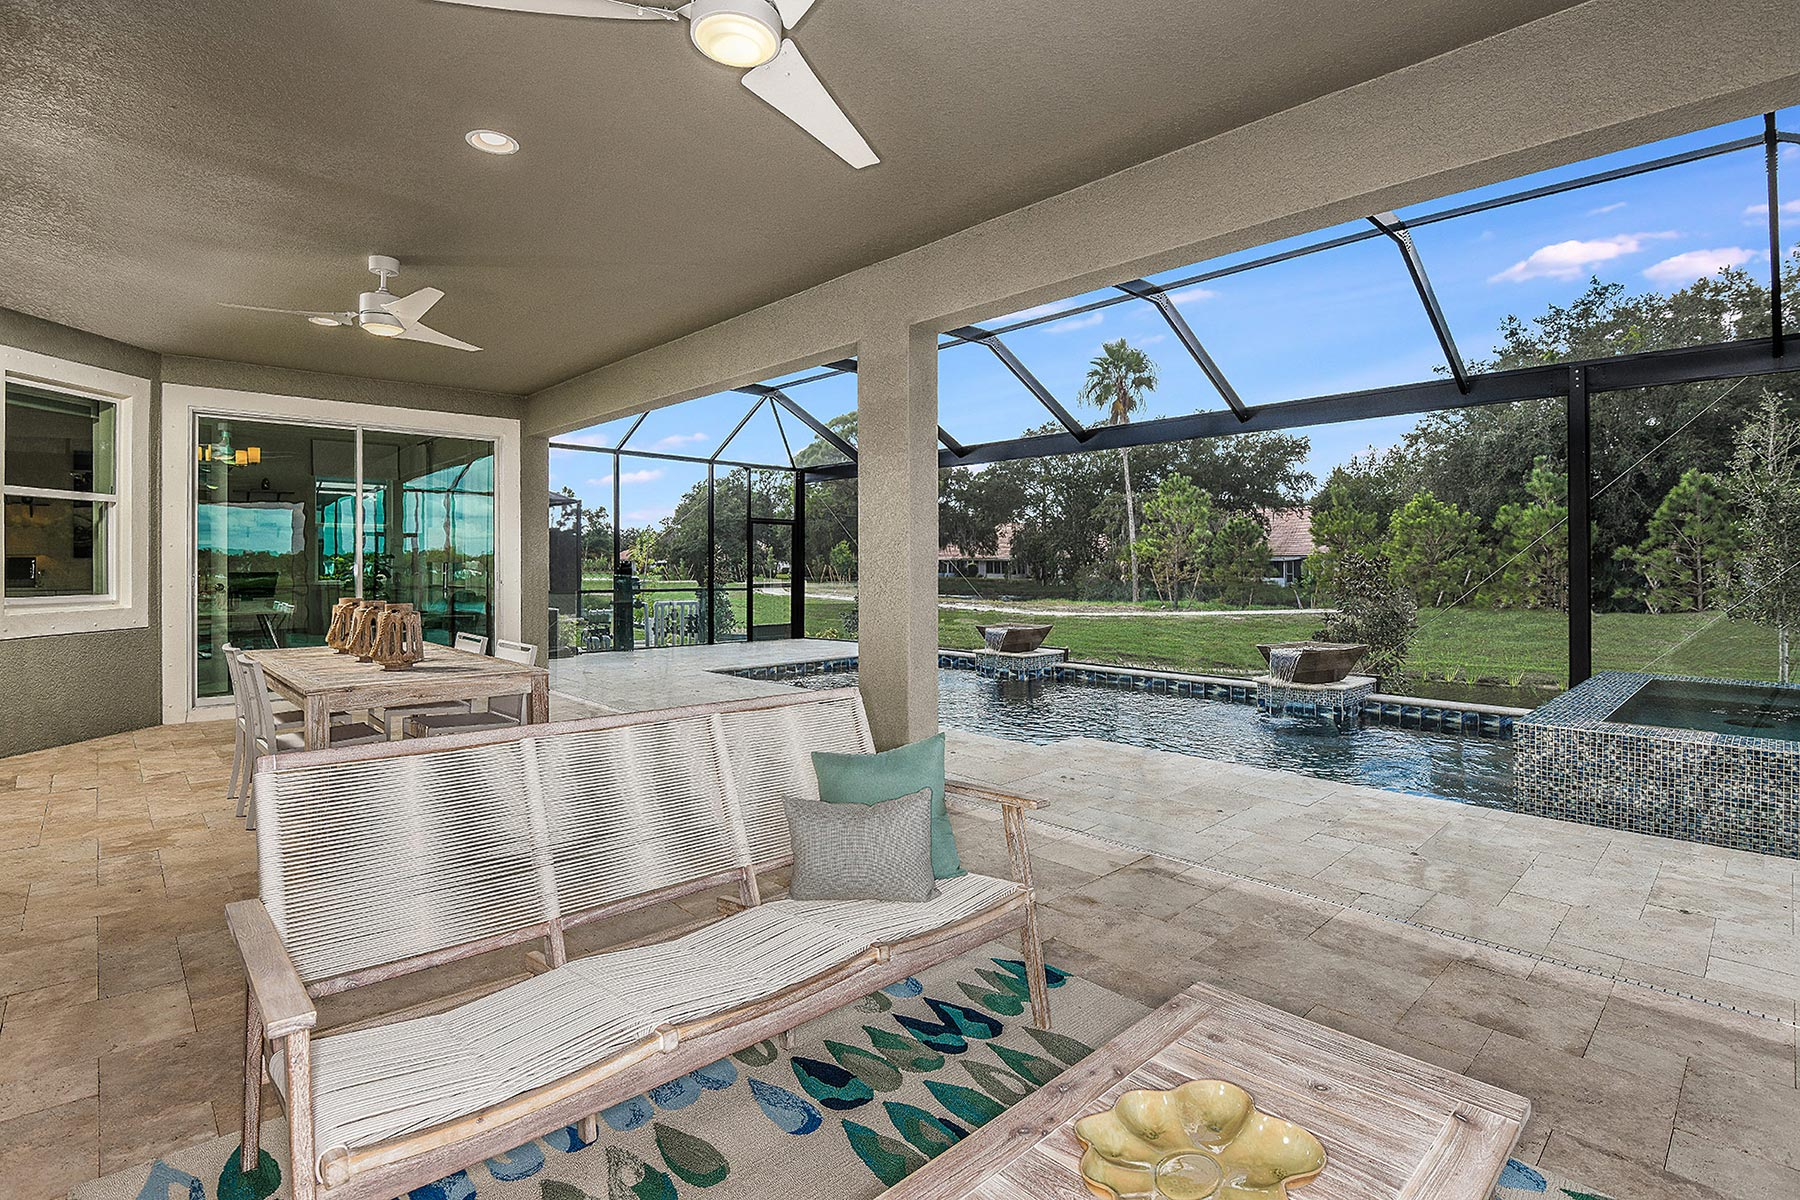 Jubilee Plan Patio at Sunrise Preserve at Palmer Ranch in Sarasota Florida by Mattamy Homes